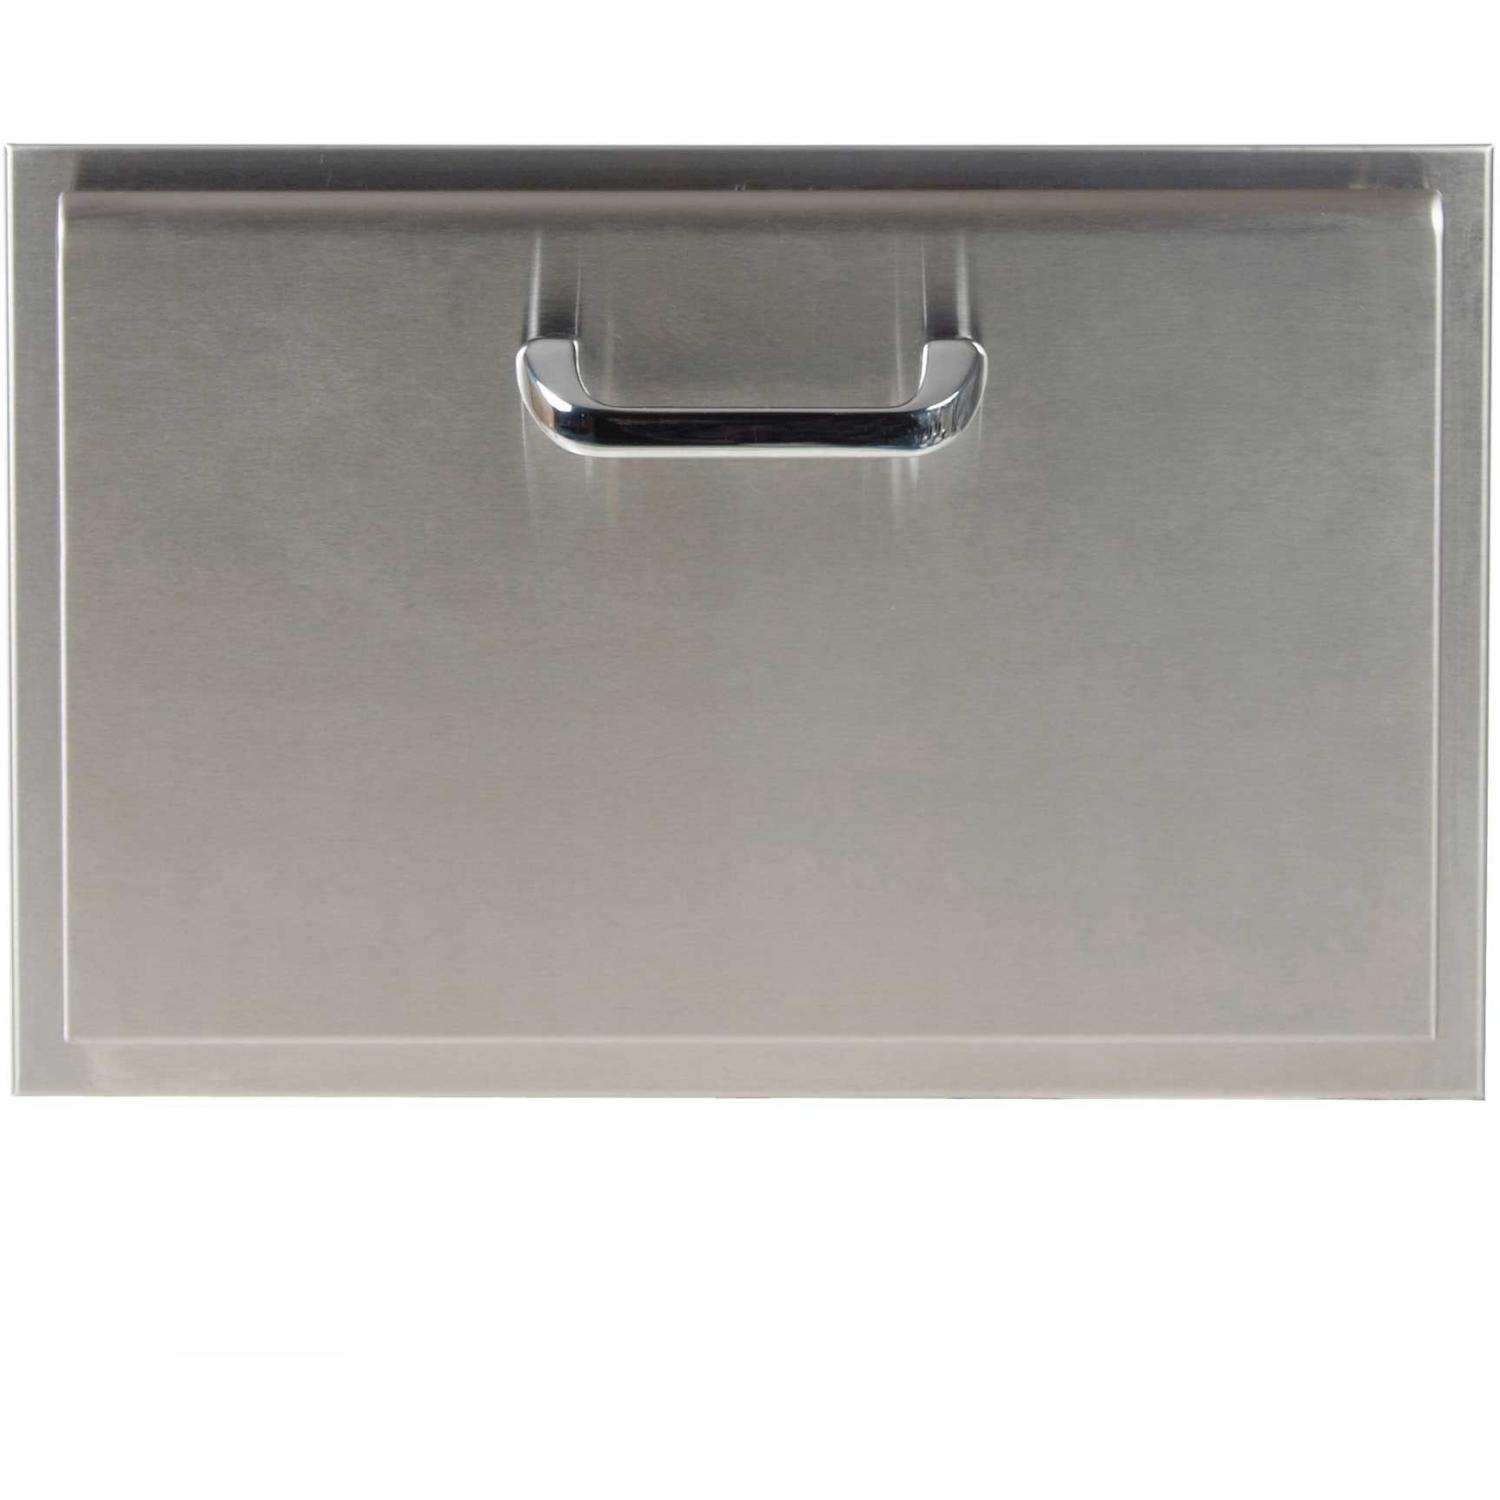 Kingston Raised Series Tilt-Out Ice Bin